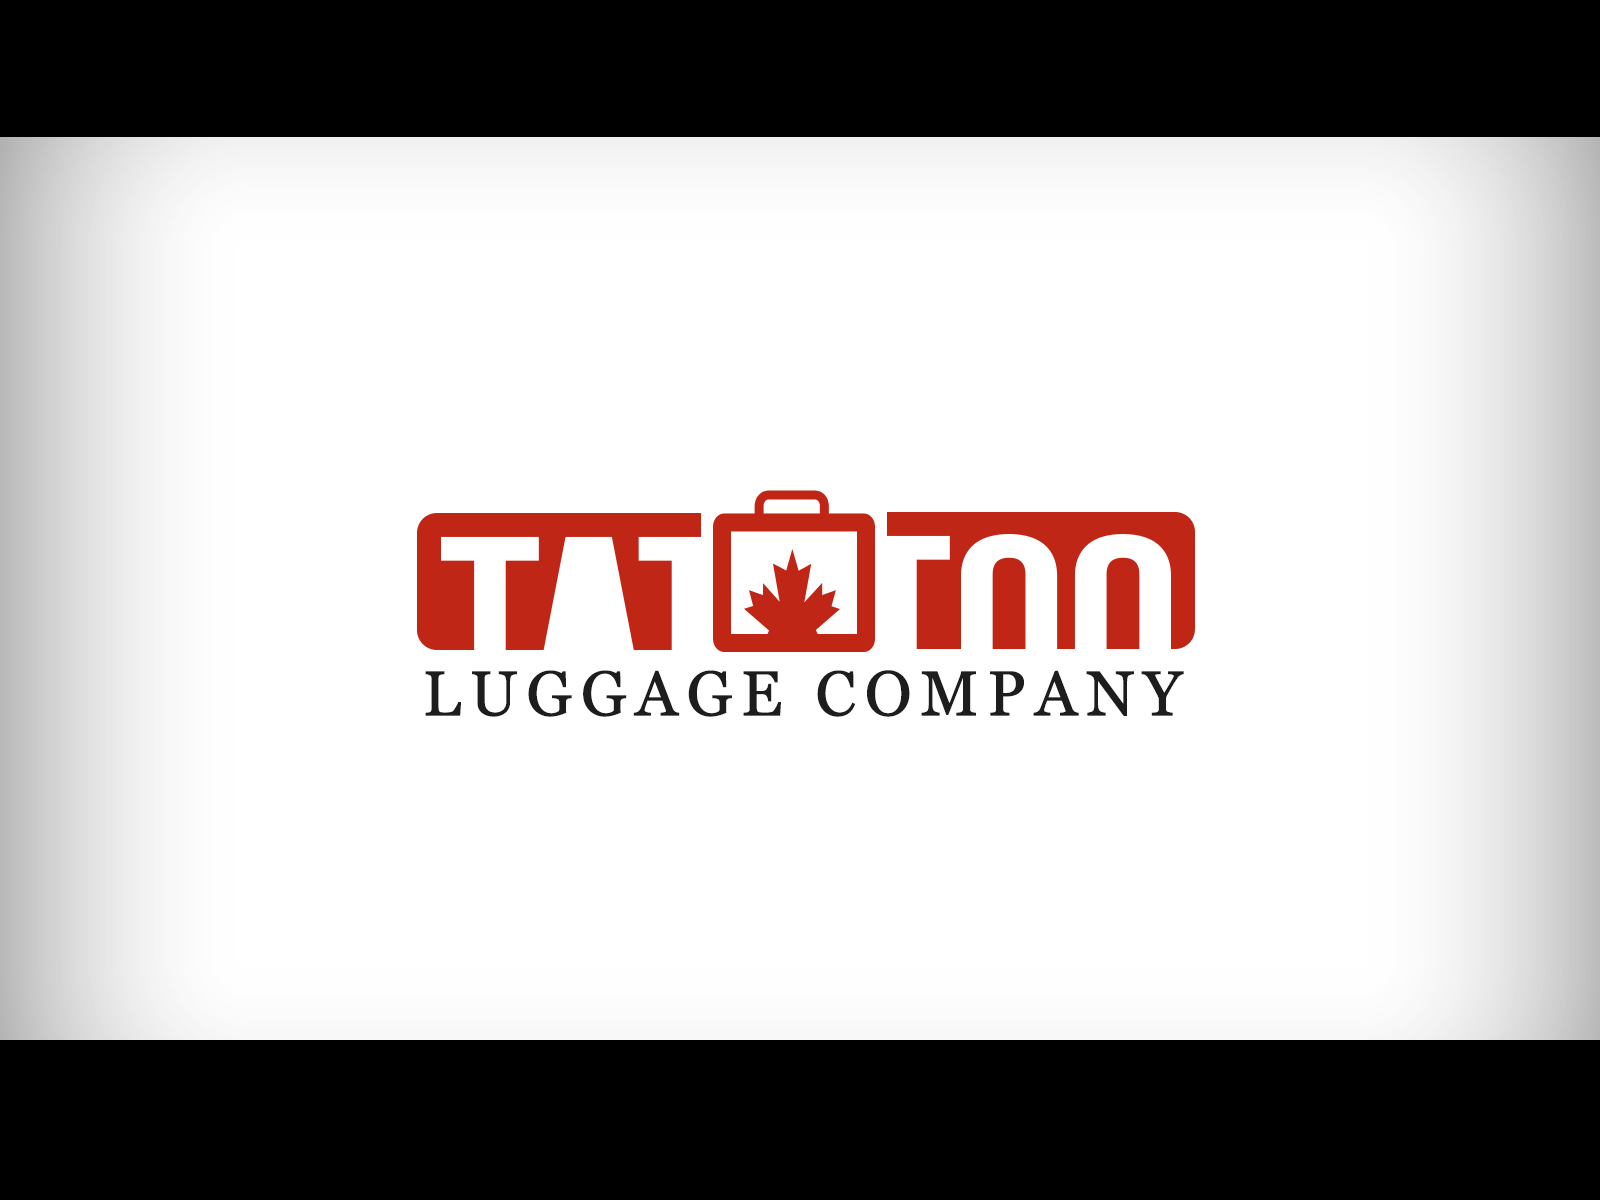 Logo Design by Virgilio Pineda III - Entry No. 173 in the Logo Design Contest Artistic Logo Design for Tattoo Luggage Company.